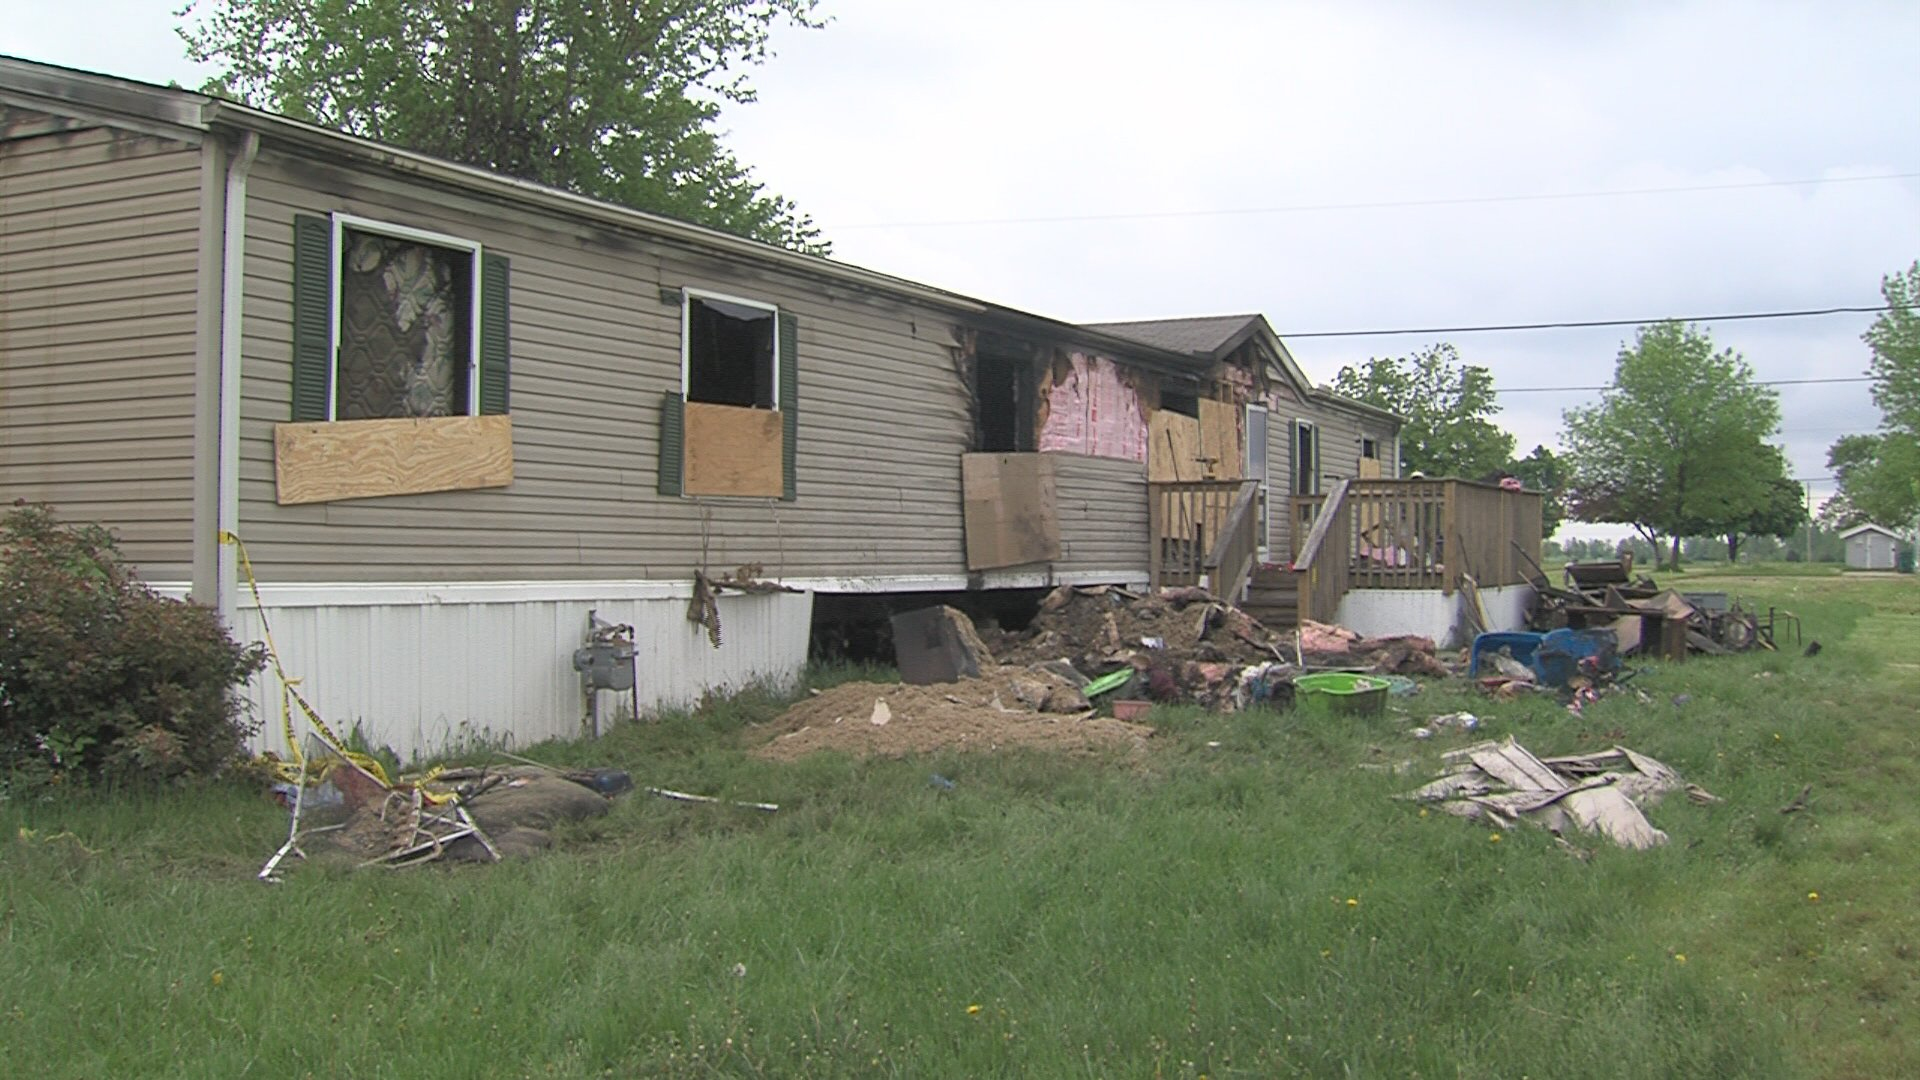 mobile home fire sends one to hospital wandtv com newscenter17